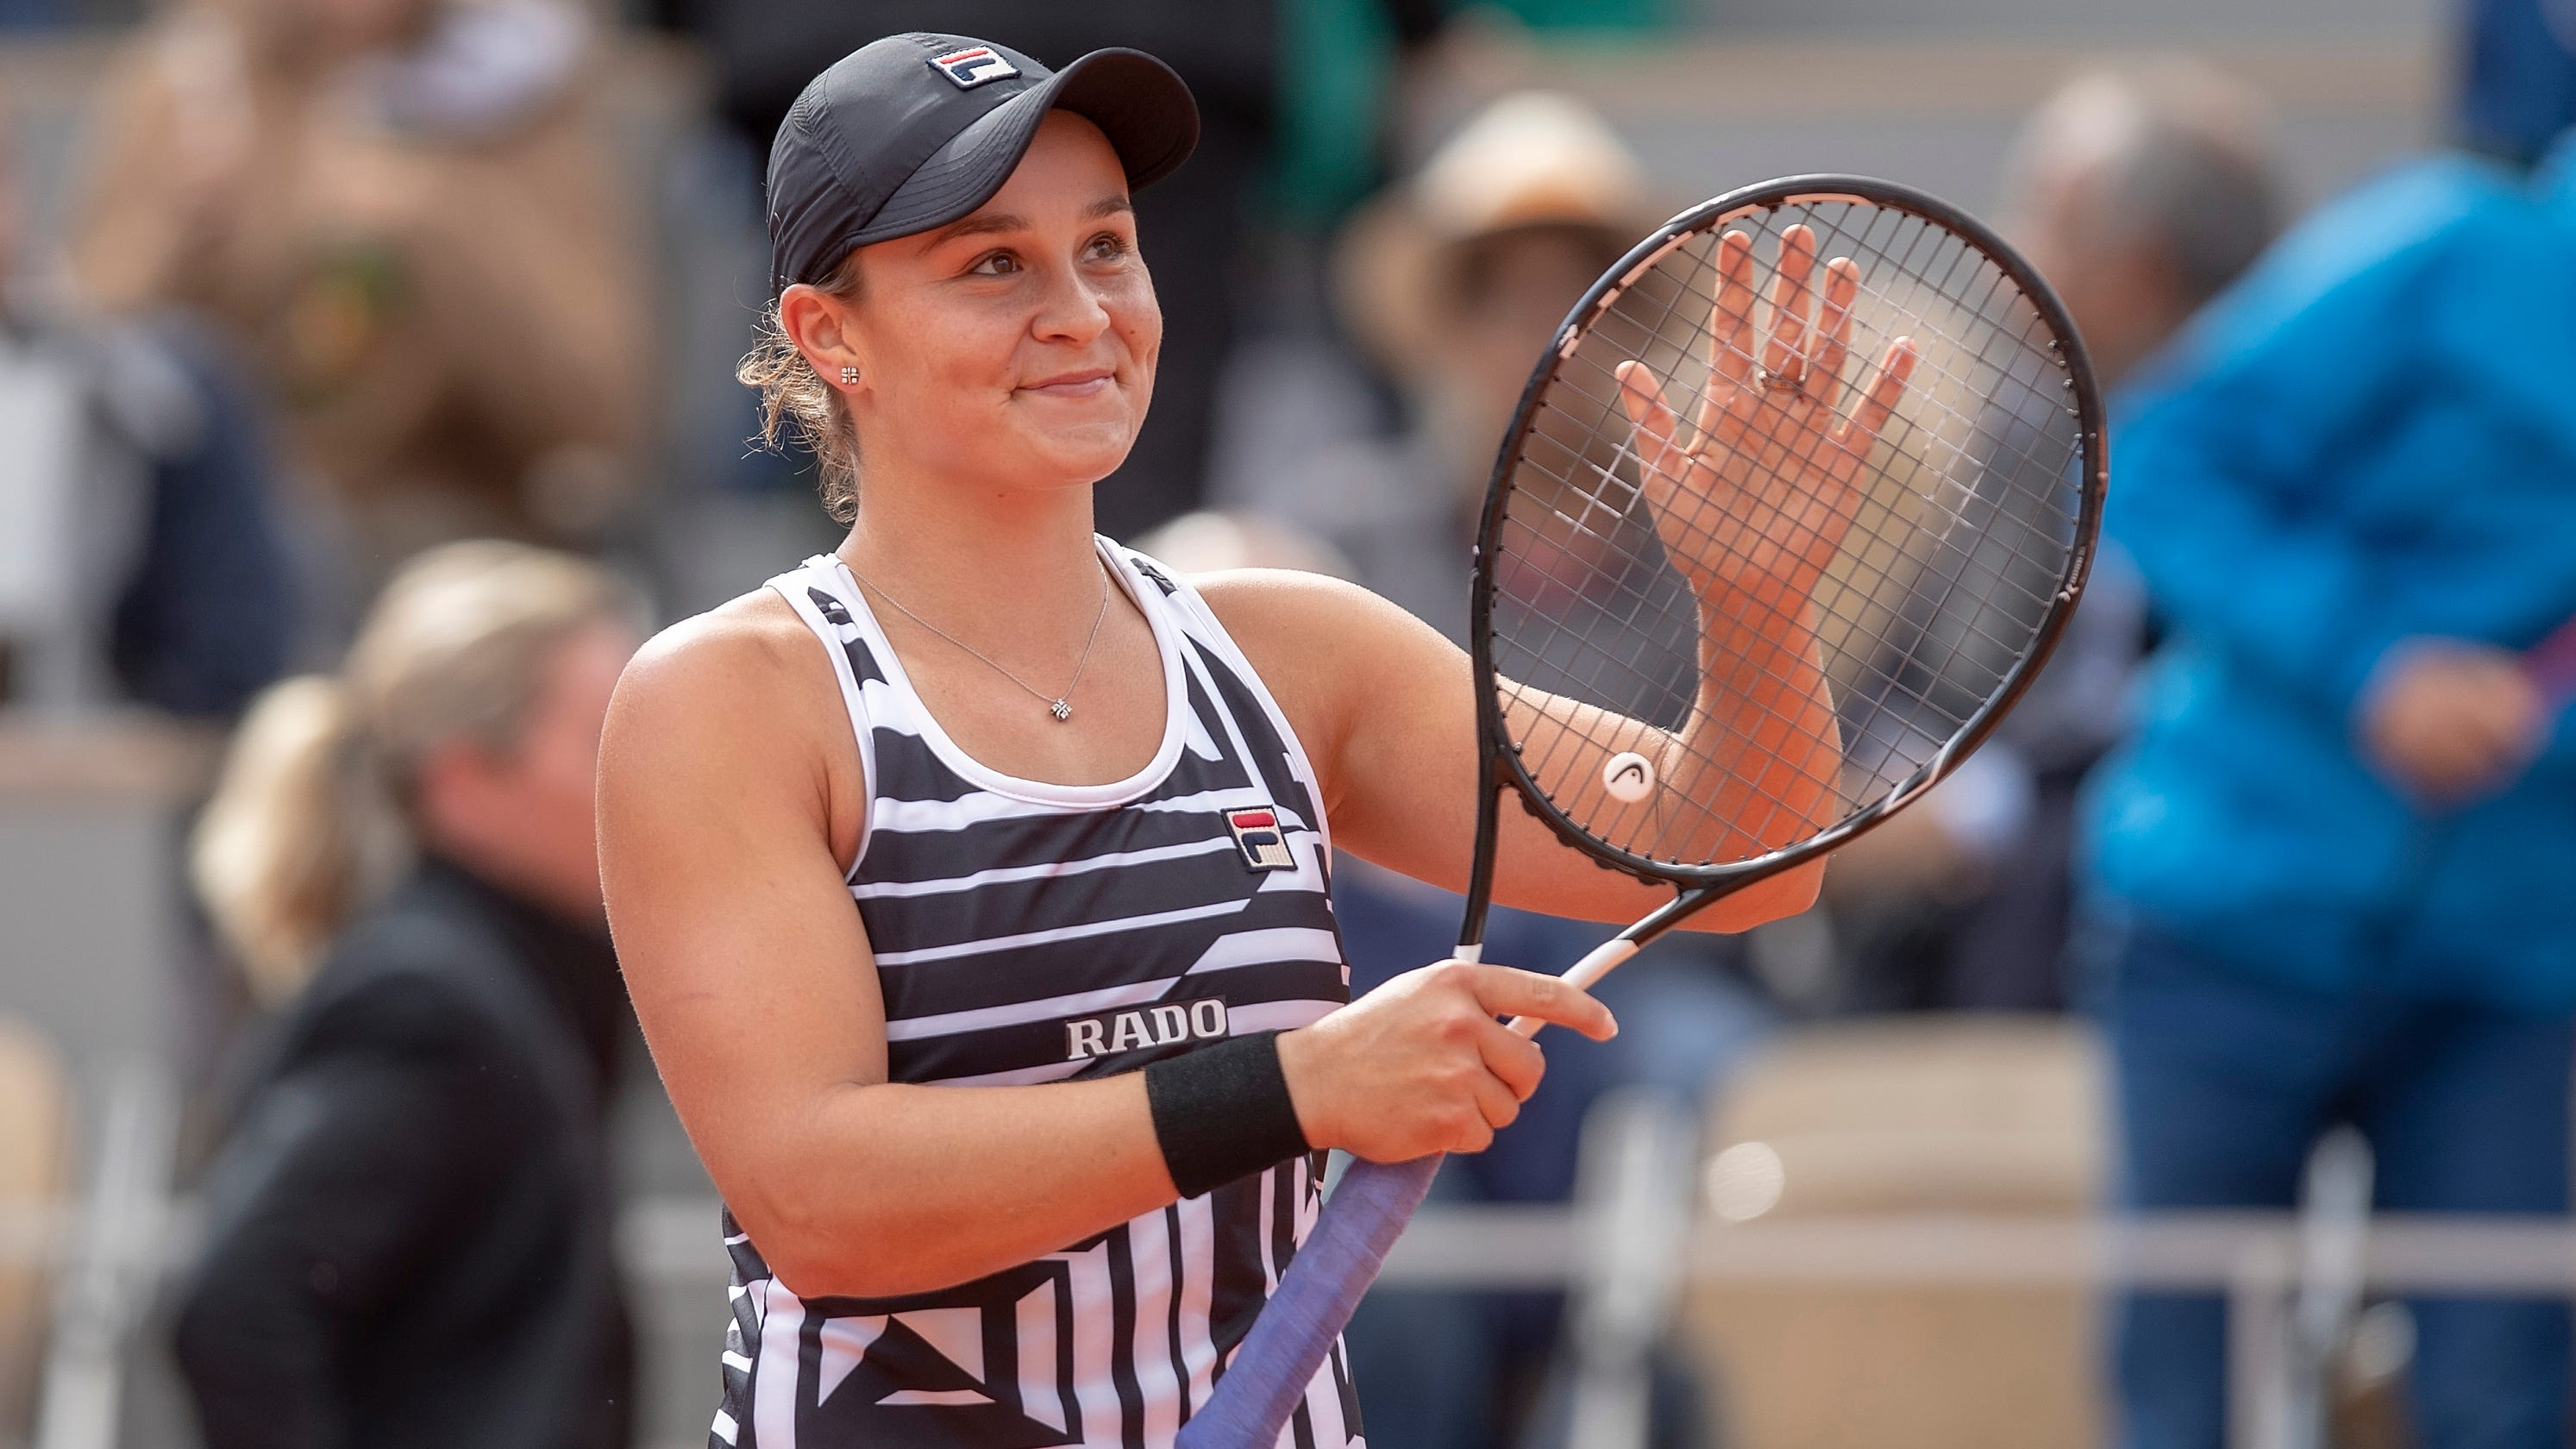 Ashleigh Barty, 2019 French Open champion, opts out of tournament due to COVID-19 concerns